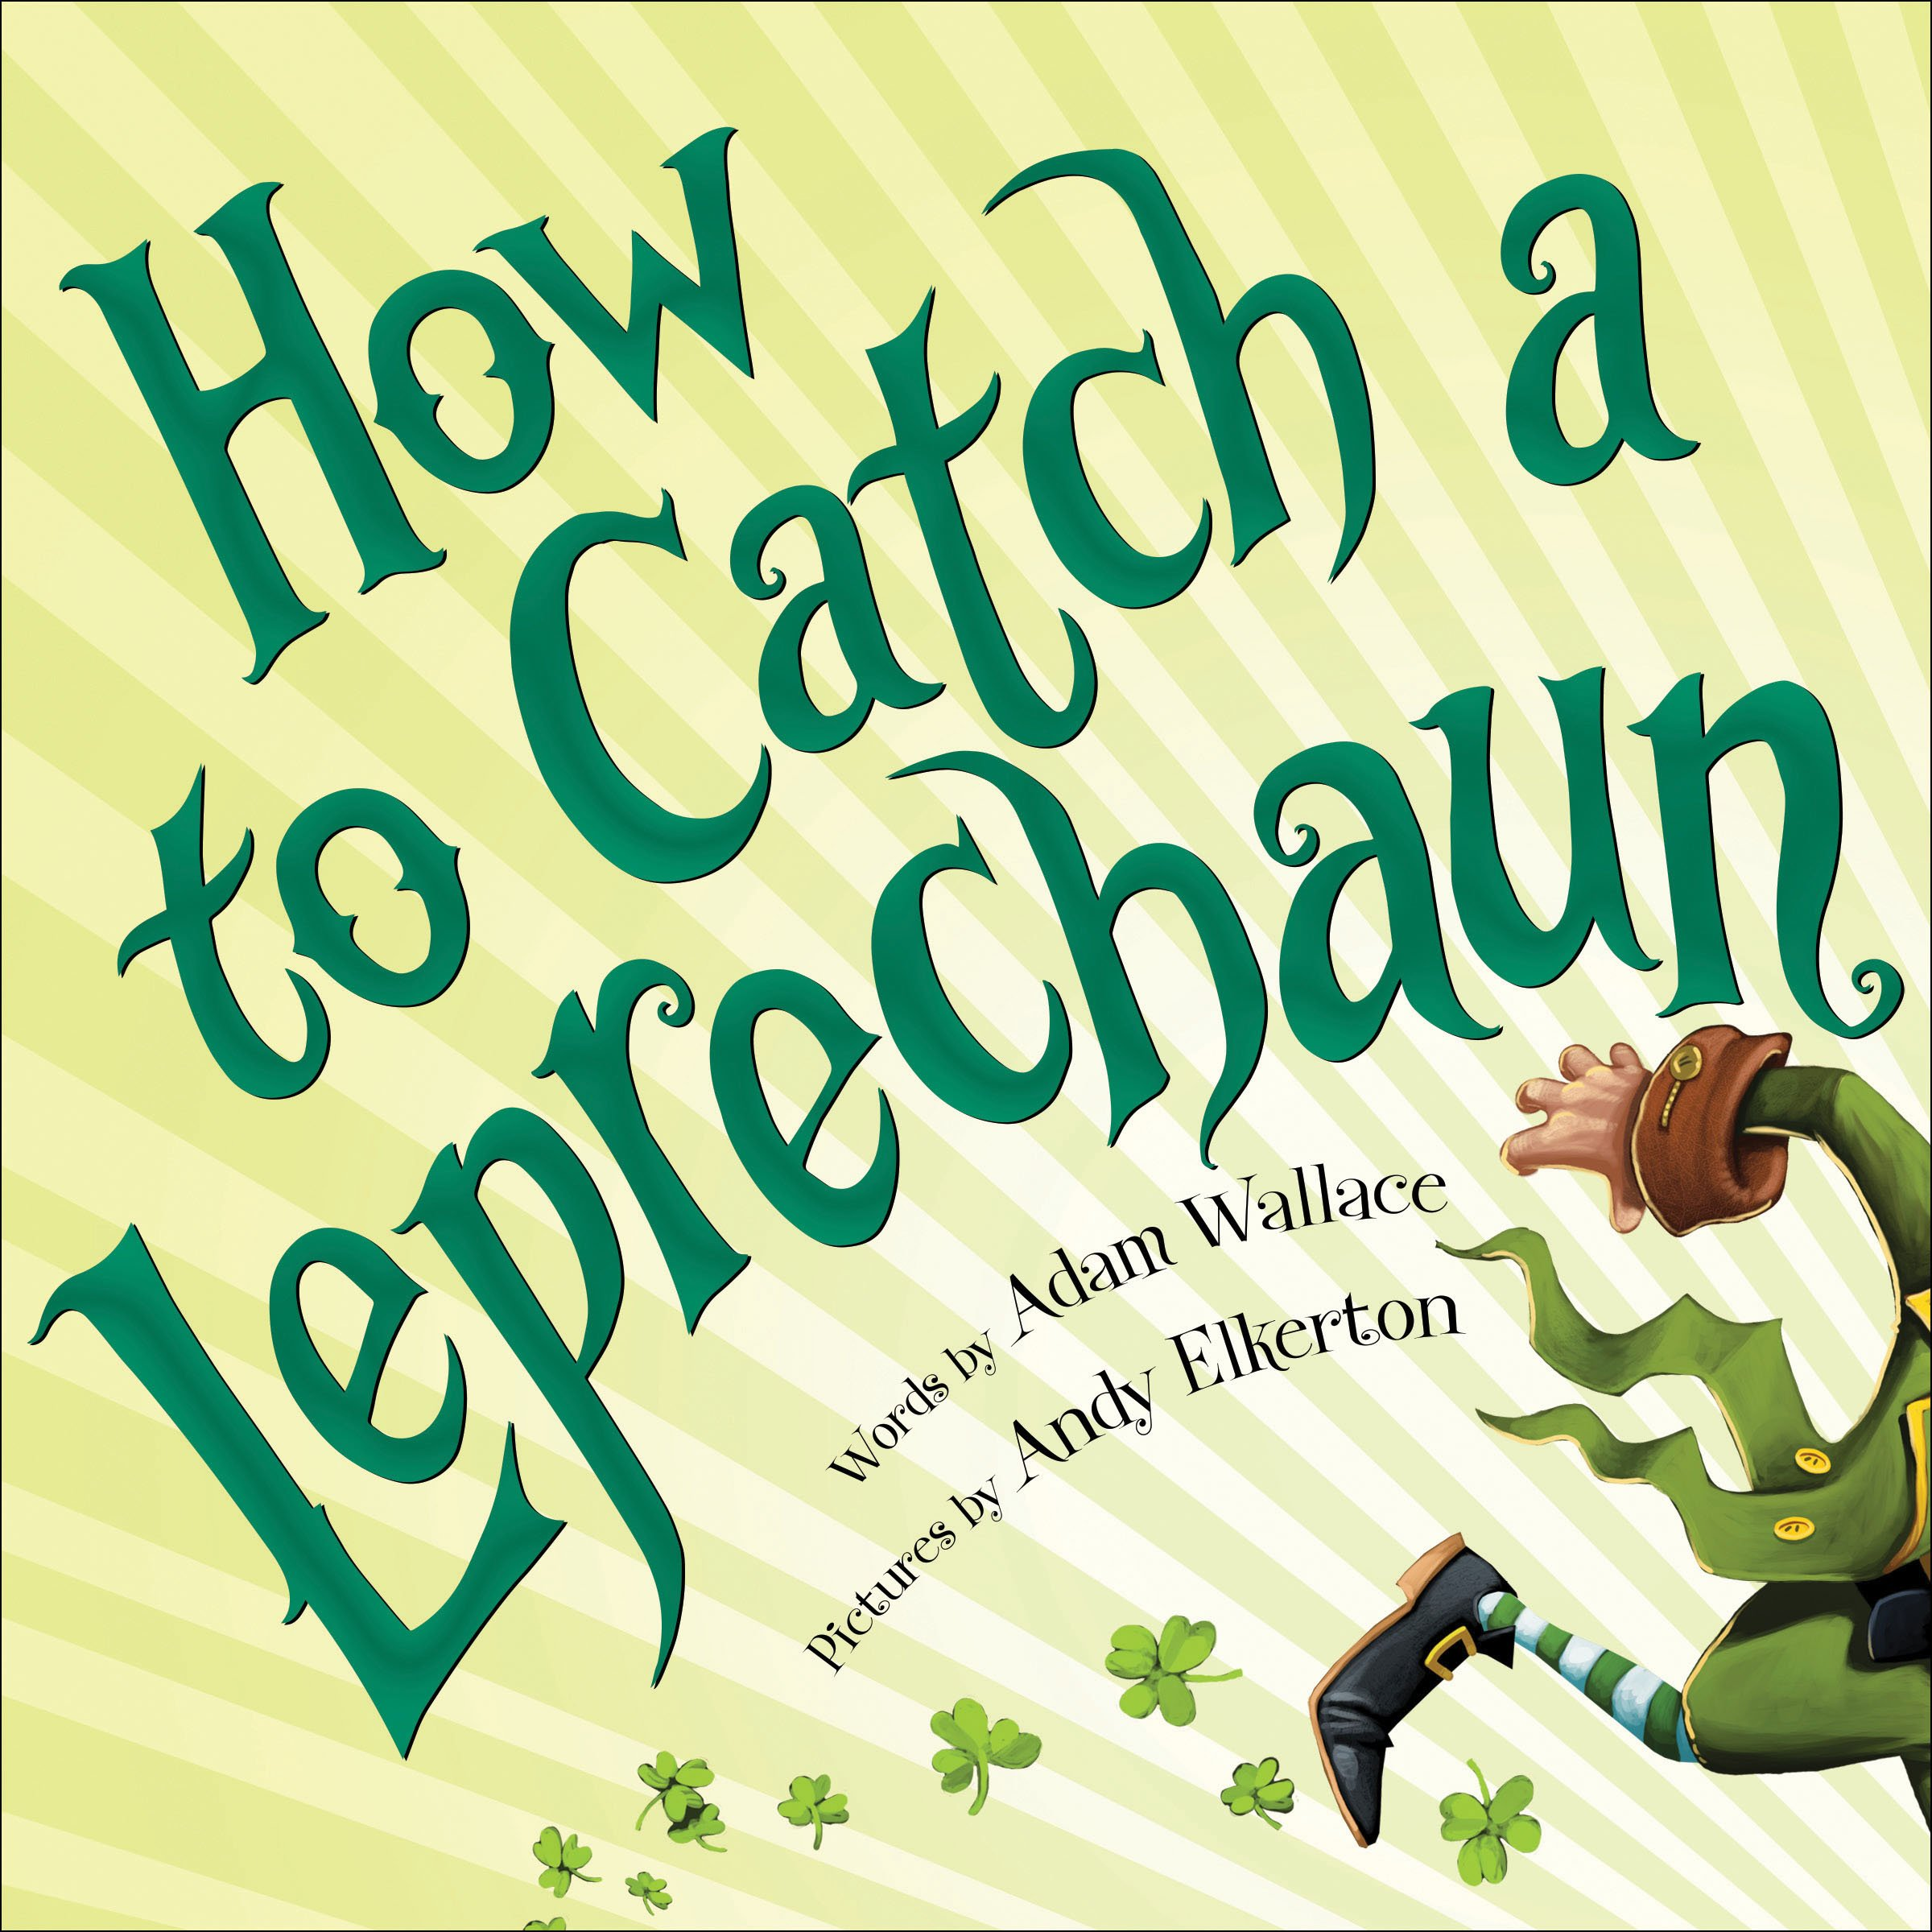 Book Cover by How to Catch a Leprechaun